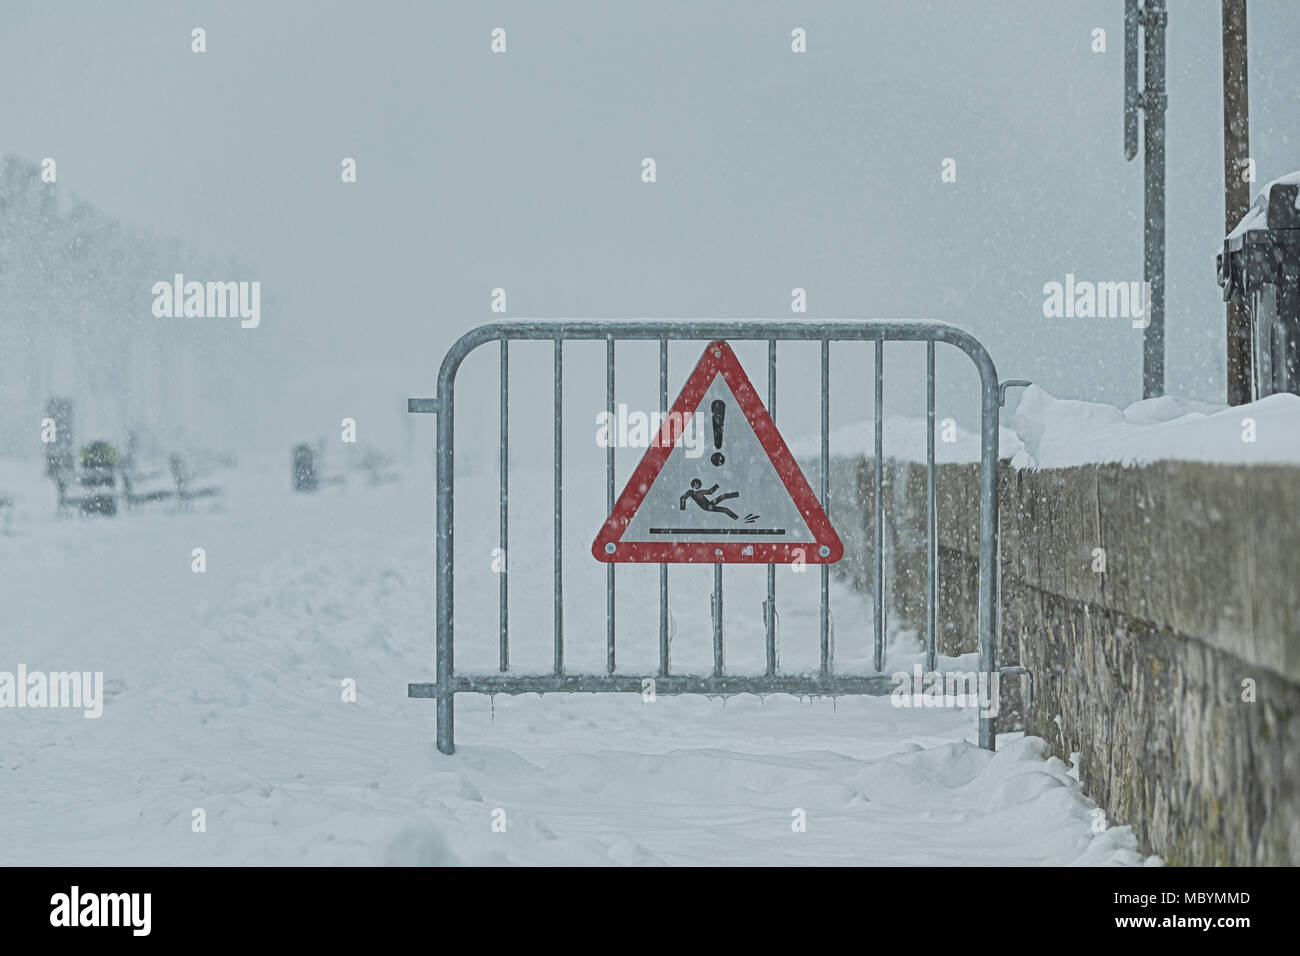 A red triangular road sign hanging at a gate on a pedestrian street signaling slippery attention due to snow. - Stock Image